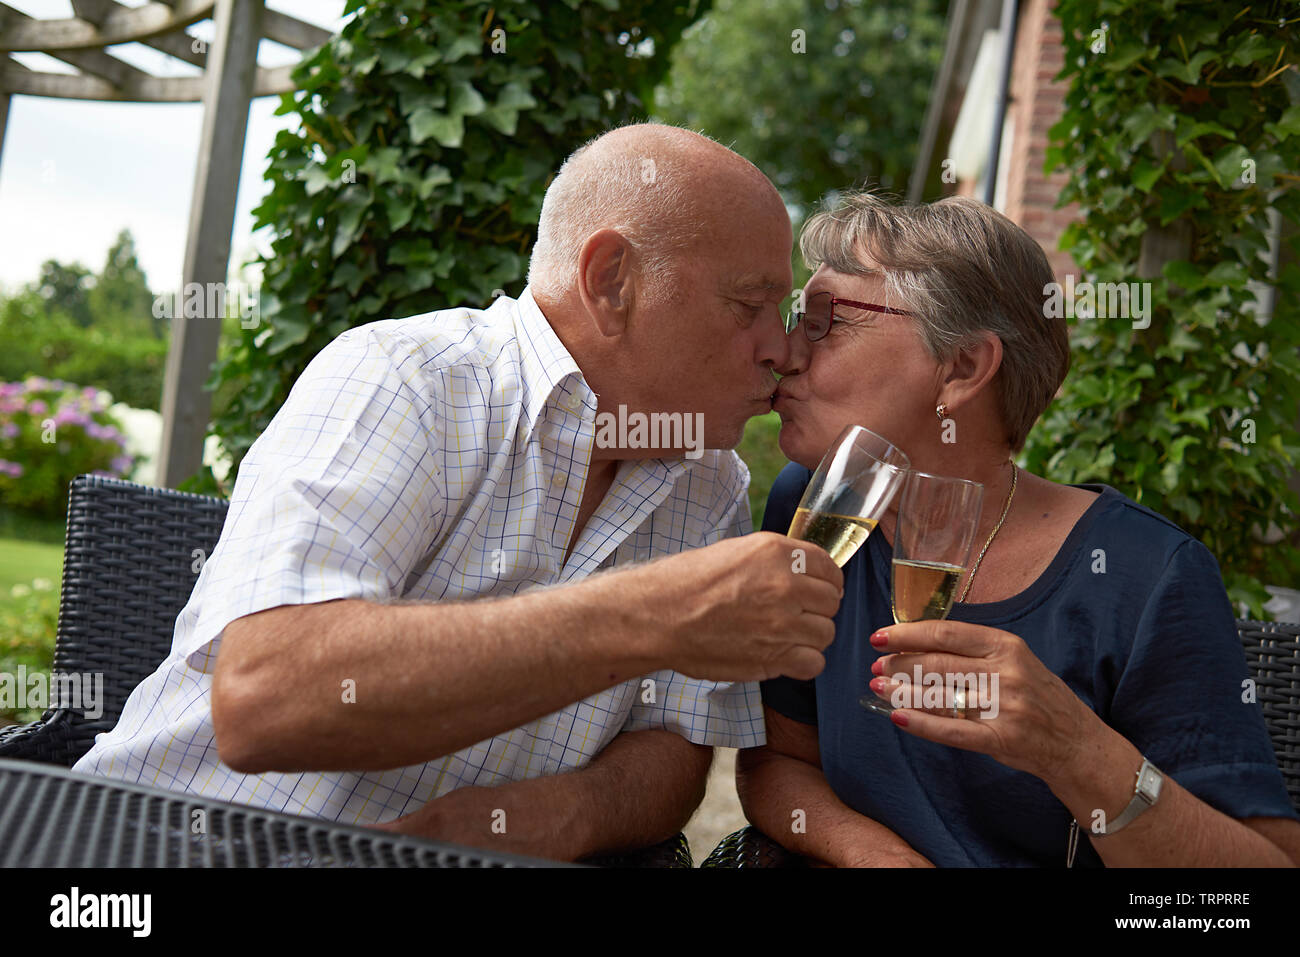 Healthy caucasian couple celebrating their 50th wedding anniversary with a kiss and a glass of champagne in their back garden in summer sunshine - Stock Image